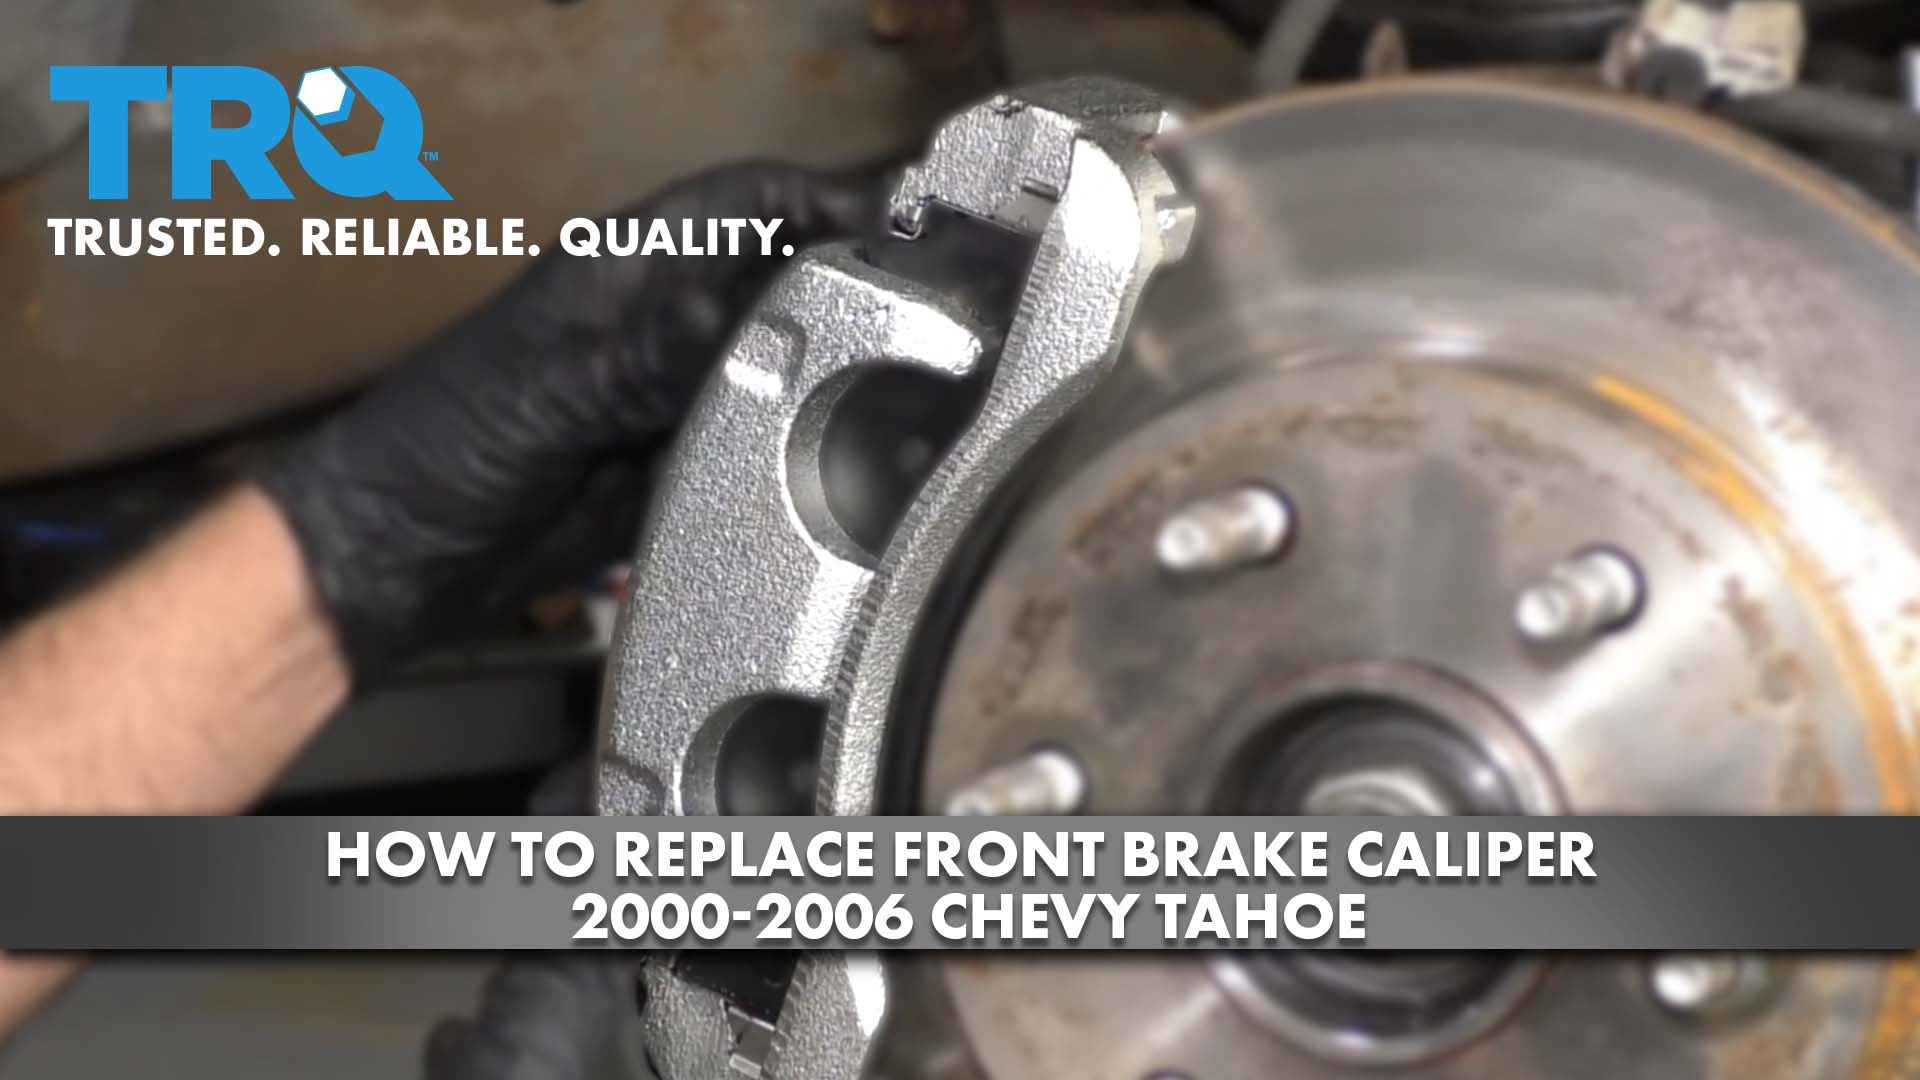 How to Replace Front Brake Caliper 2000-06 Chevy Tahoe